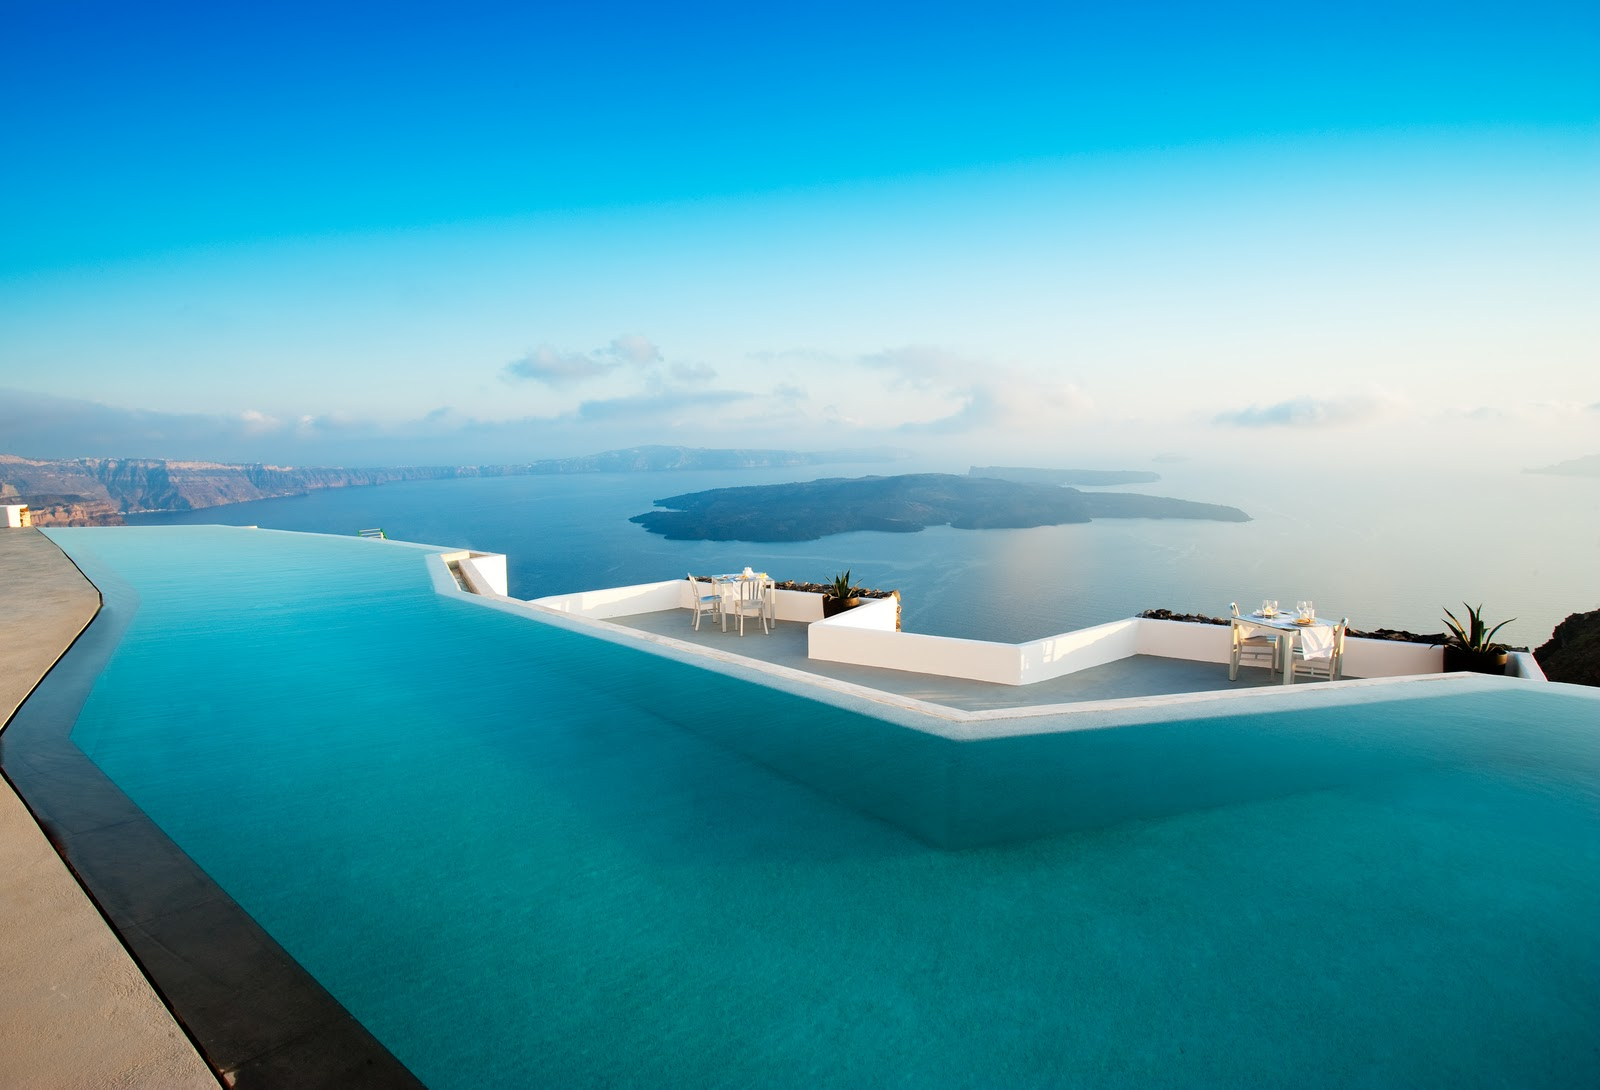 World most luxurious and expensive hotel santorini grace for Infinity swimming pools pictures